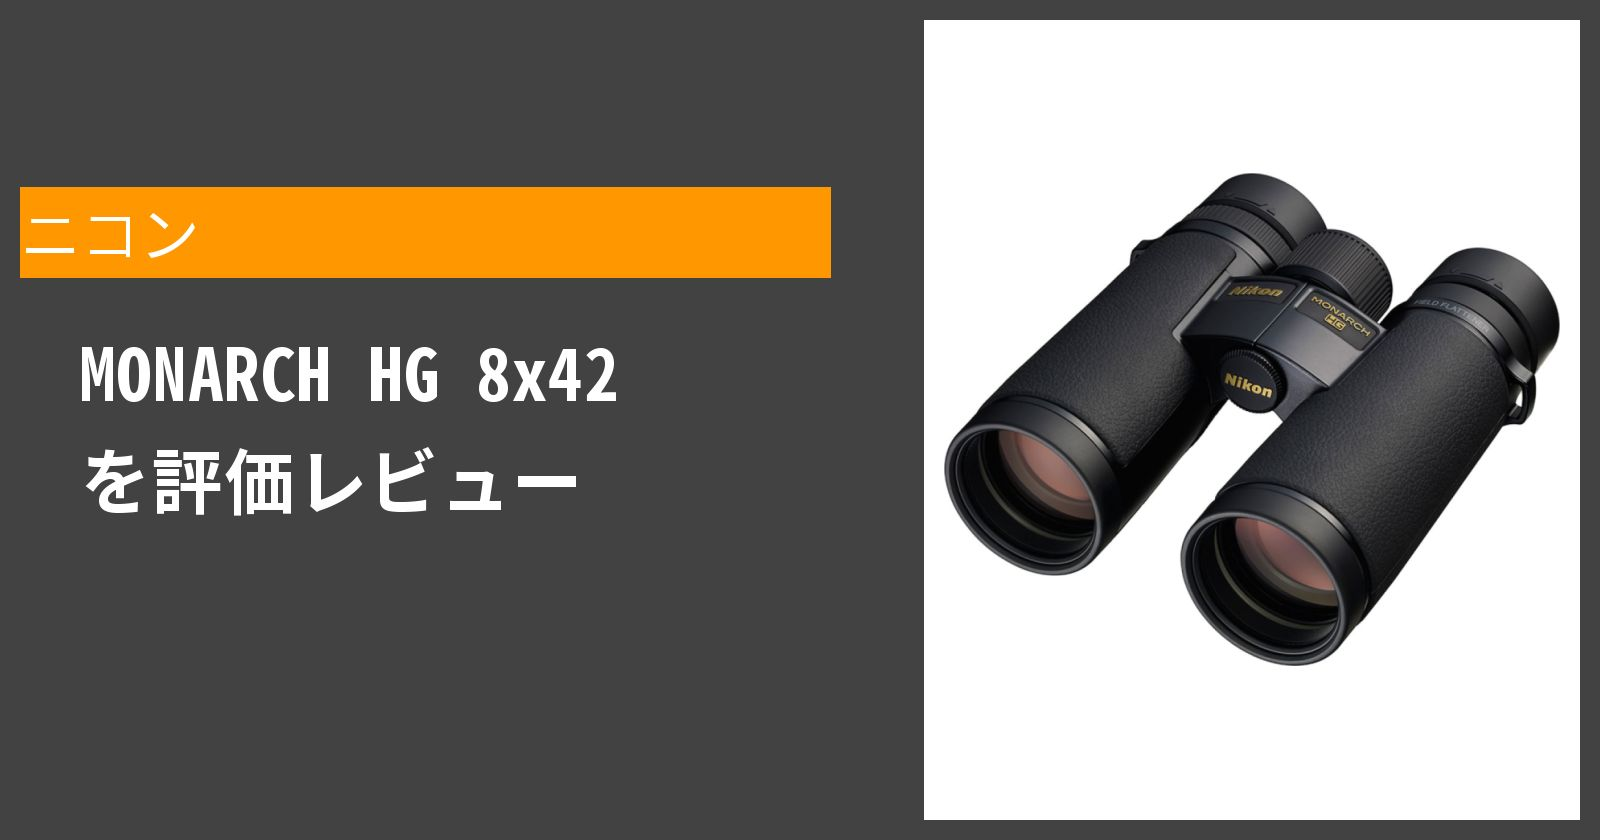 MONARCH HG 8x42を徹底評価